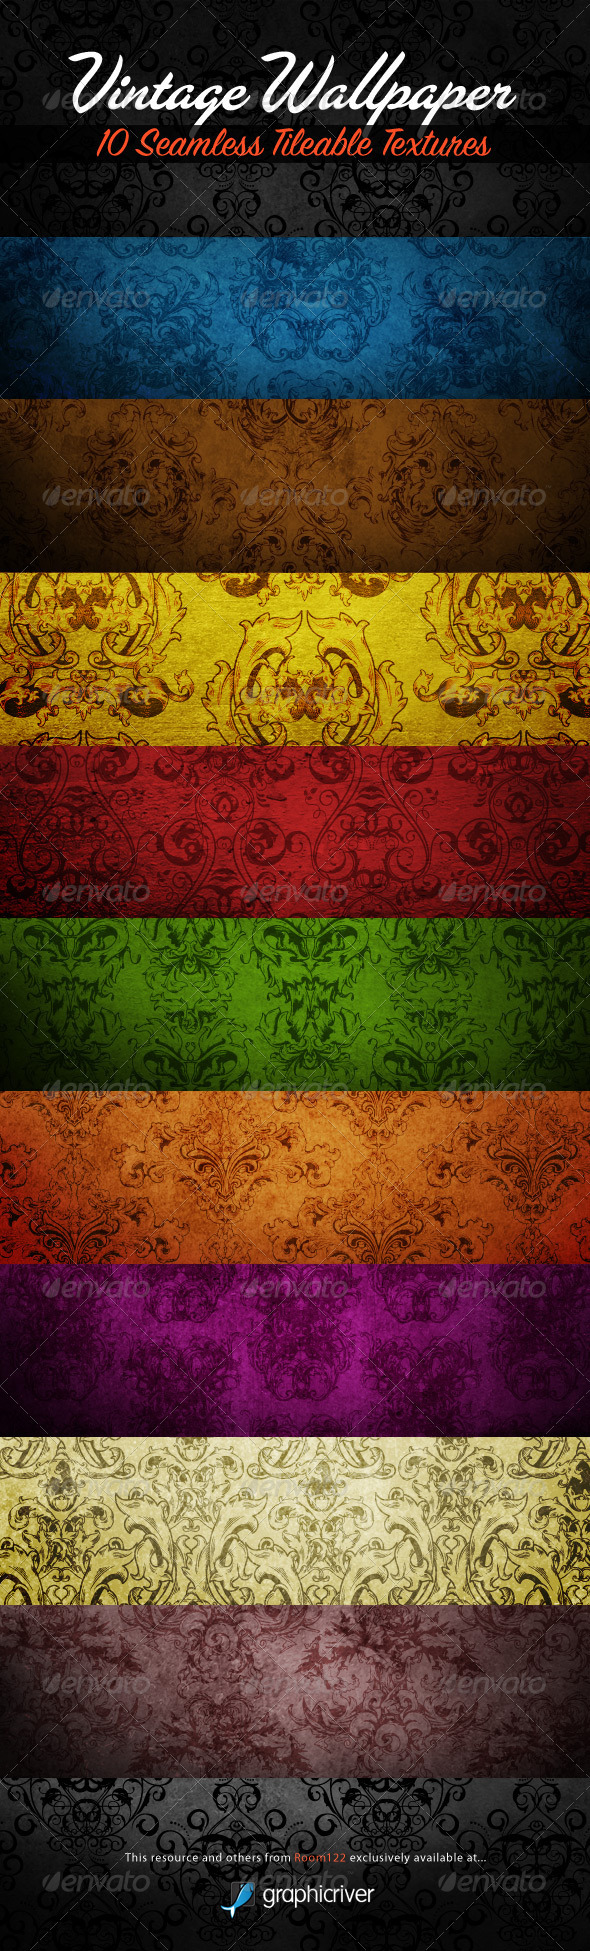 GraphicRiver 10 Seamless Vintage Wallpapers Tileable Textures 597633